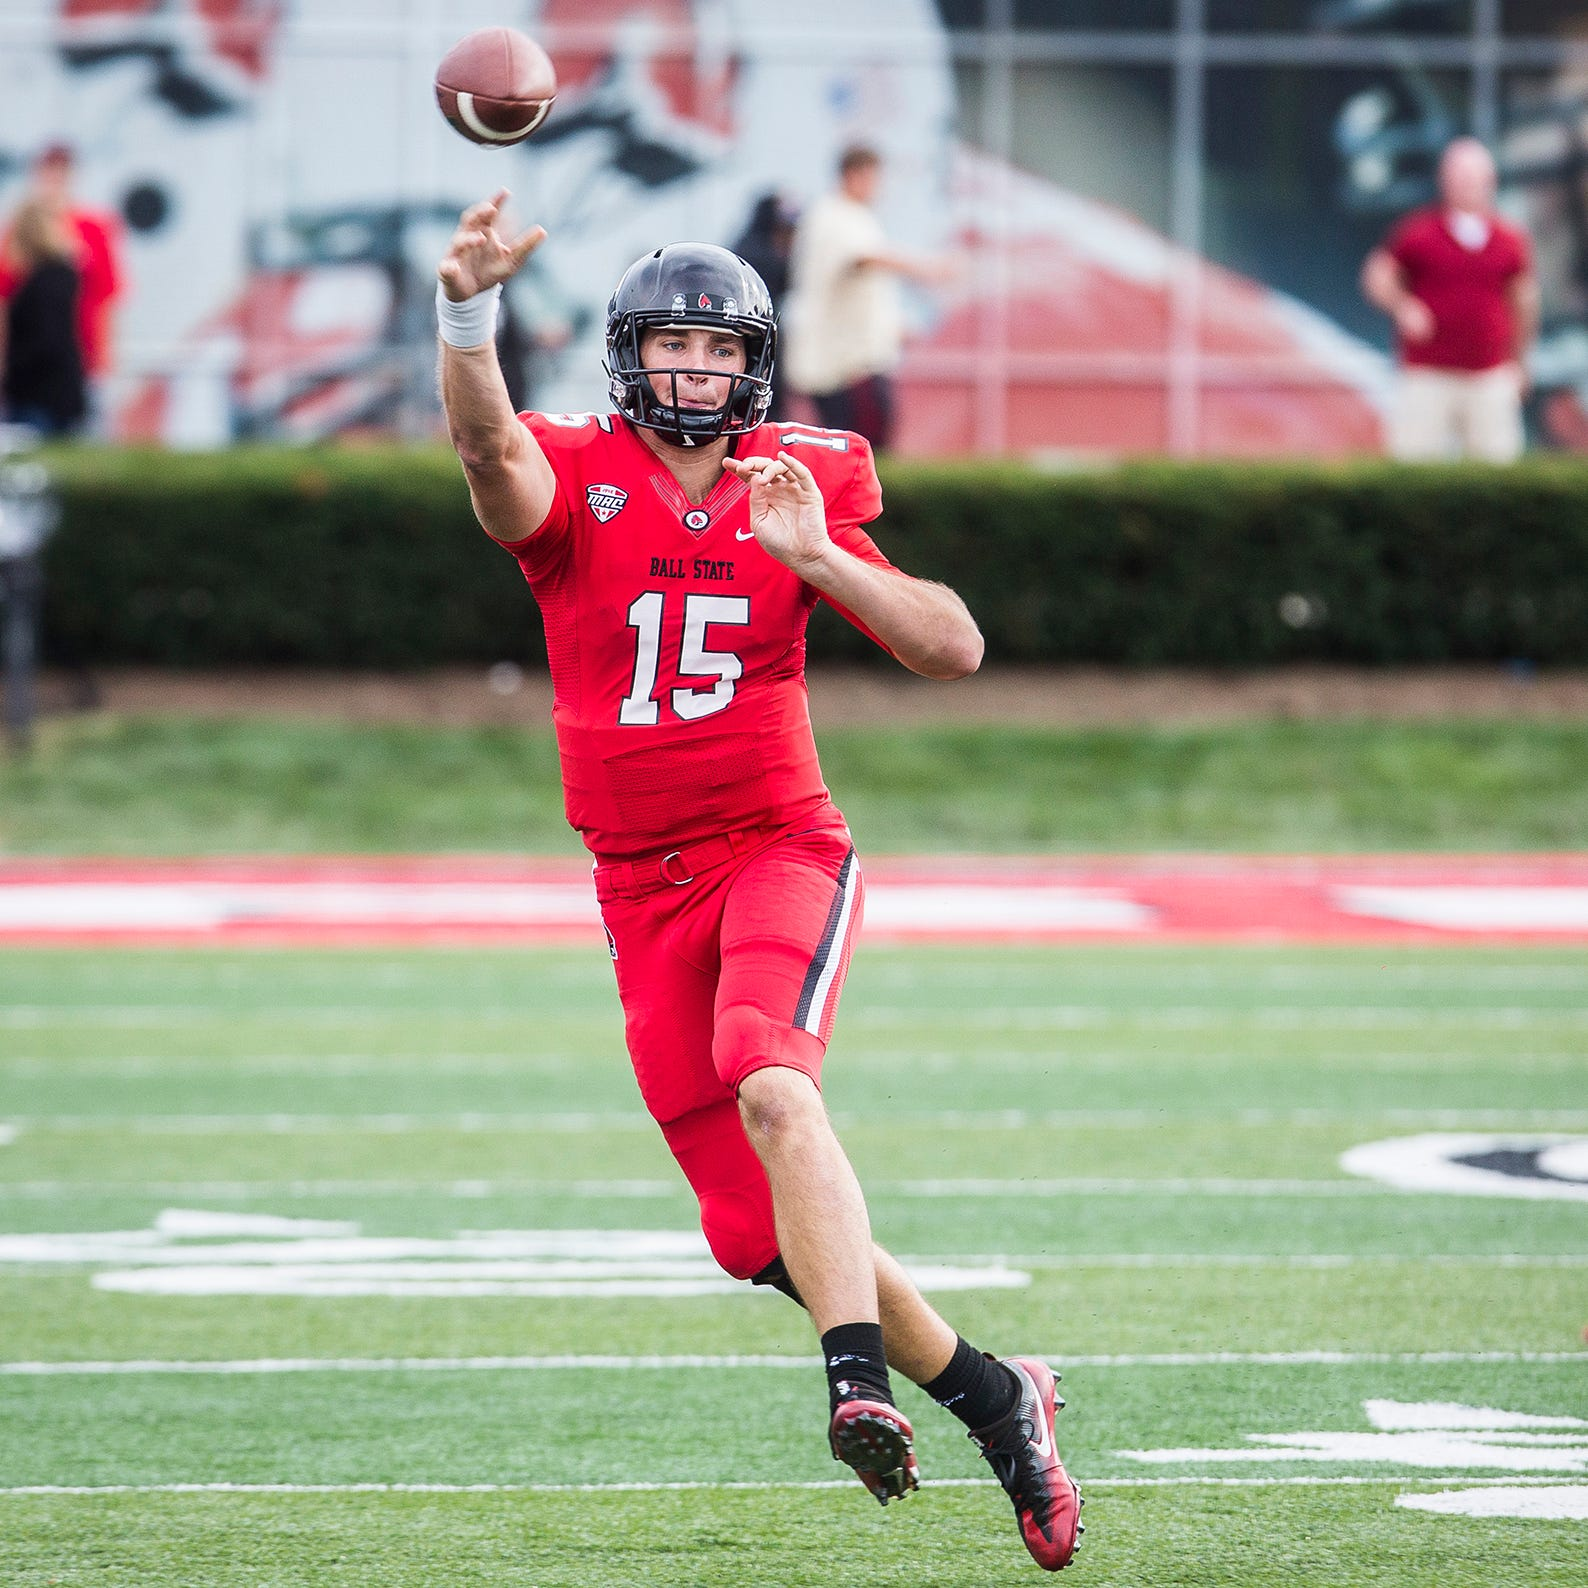 Riley Neal transferring to Vanderbilt football from Ball State